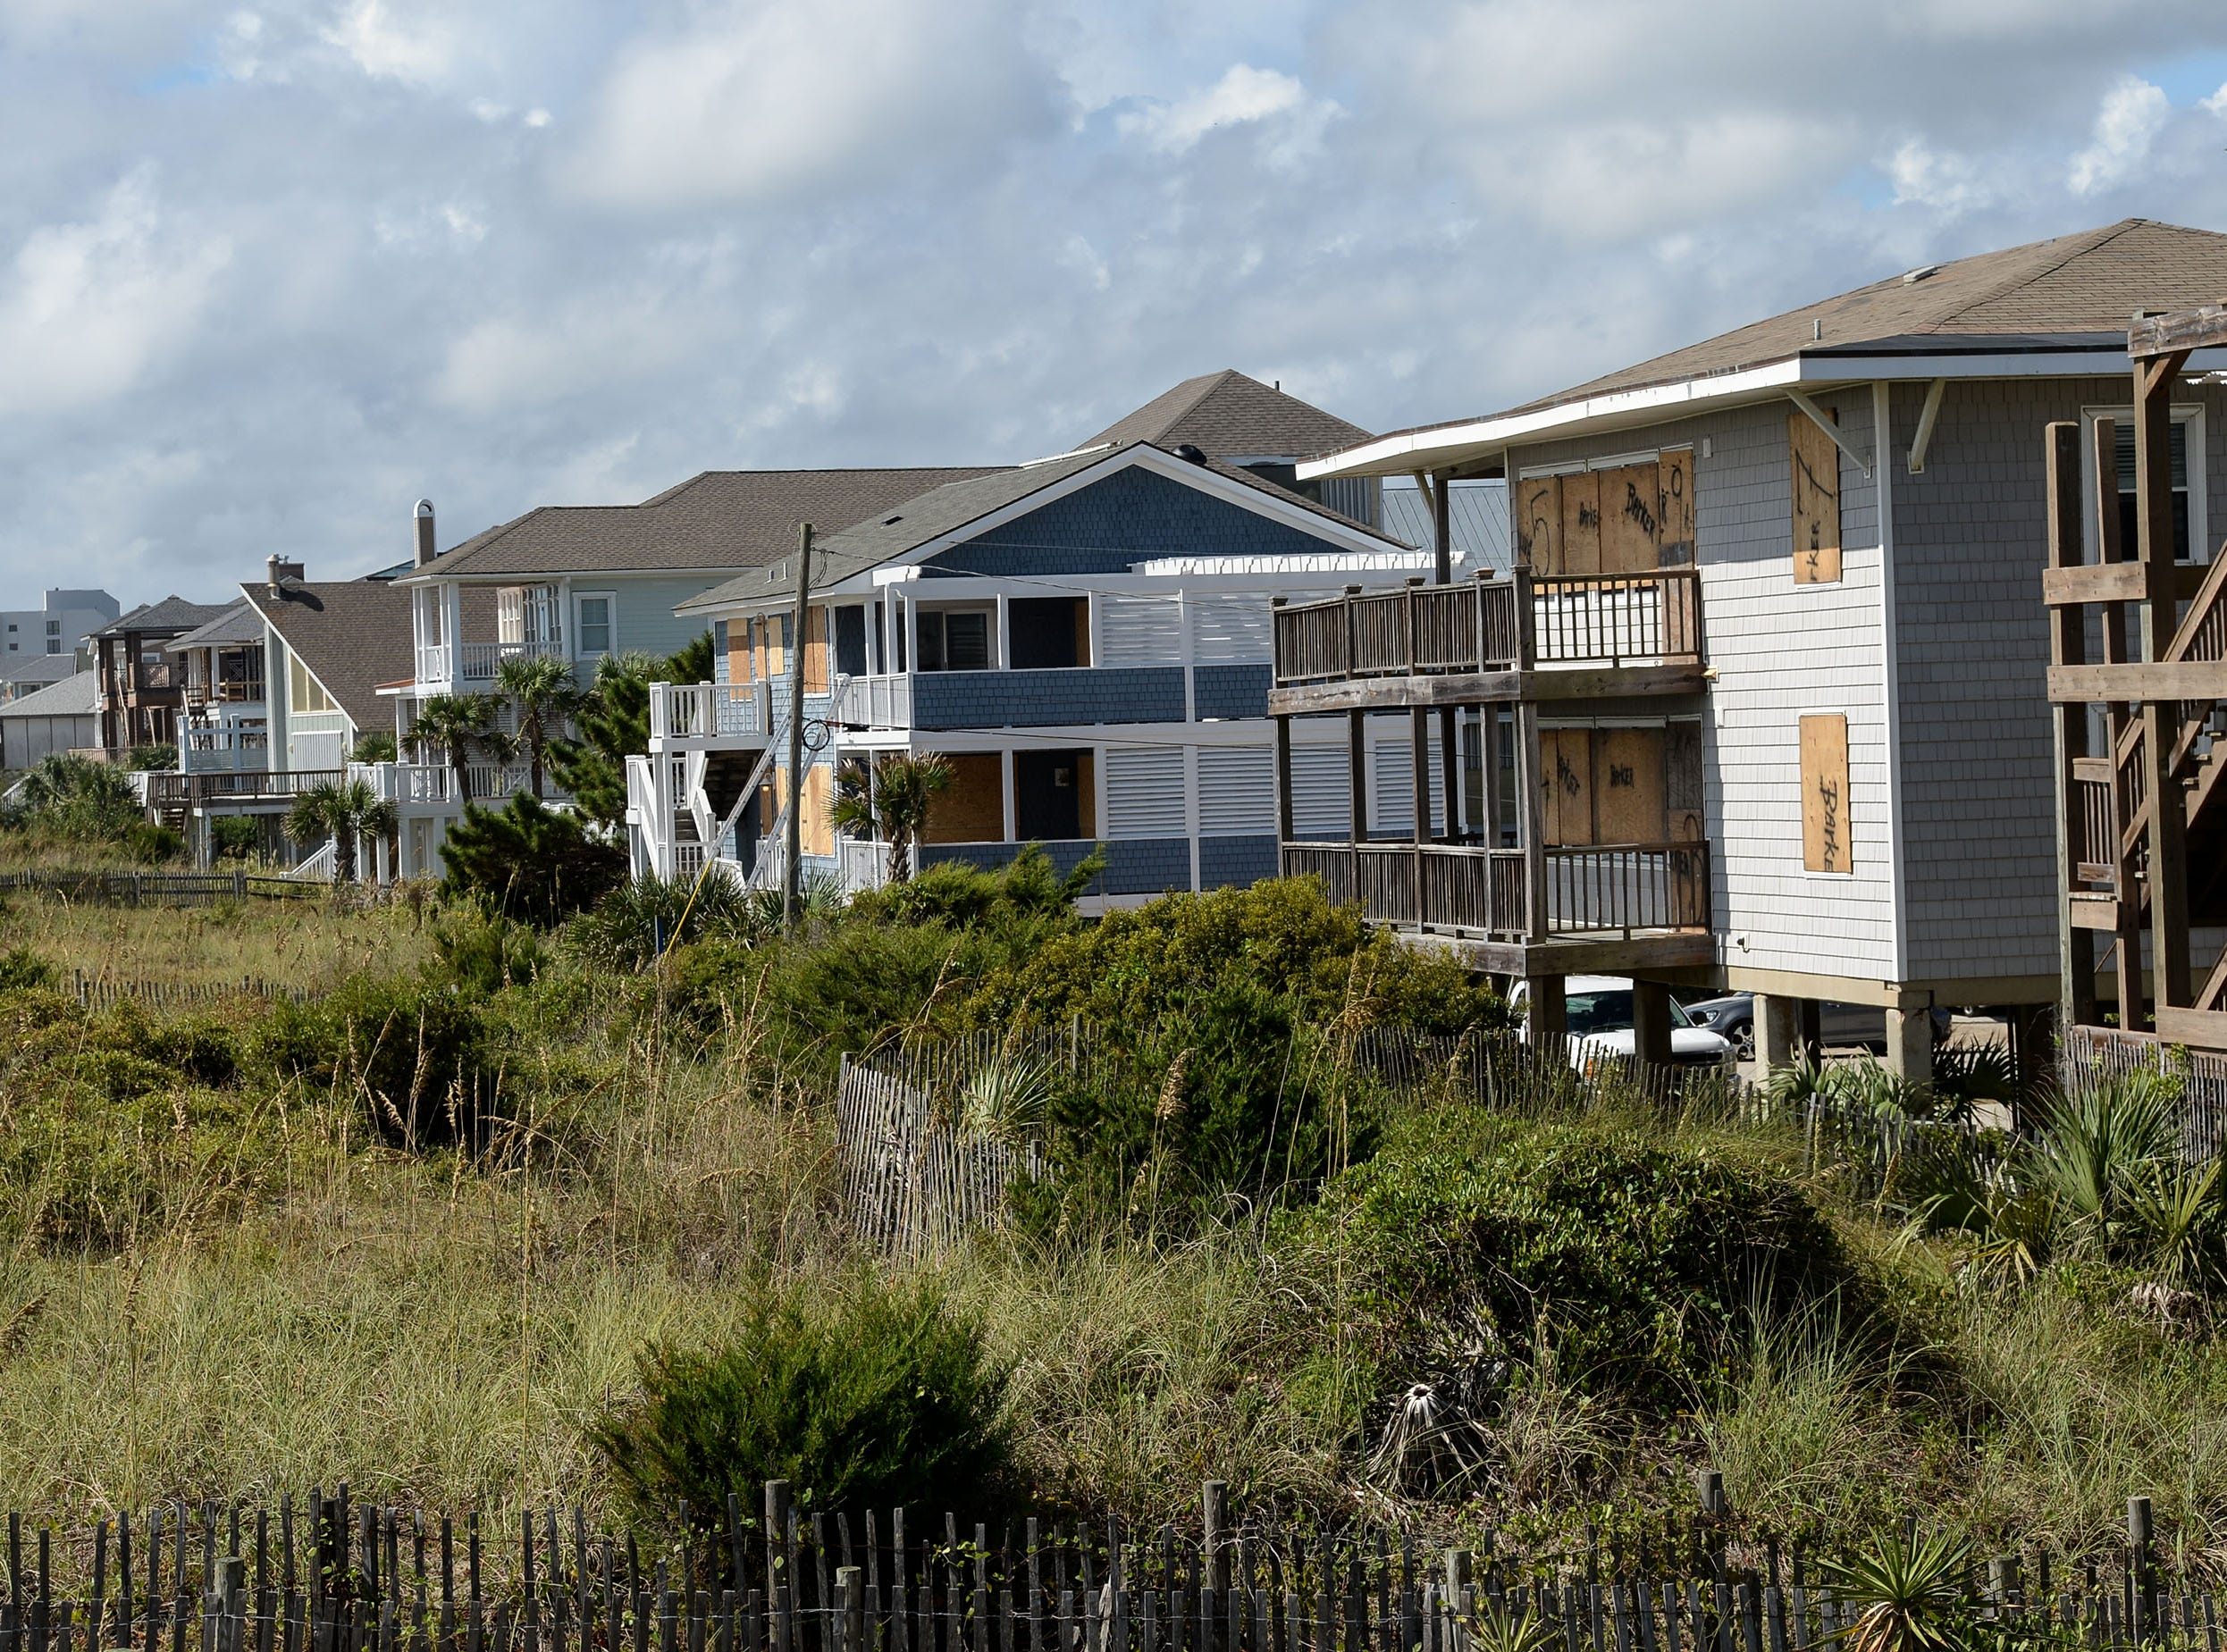 Houses on the shore are boarded up at Wrigtsville Beach in Wilmington, North Carolina on Wednesday, September 12, 2018.  (Ken Ruinard / Greenville News / Gannett USA Today Network / 2018 )